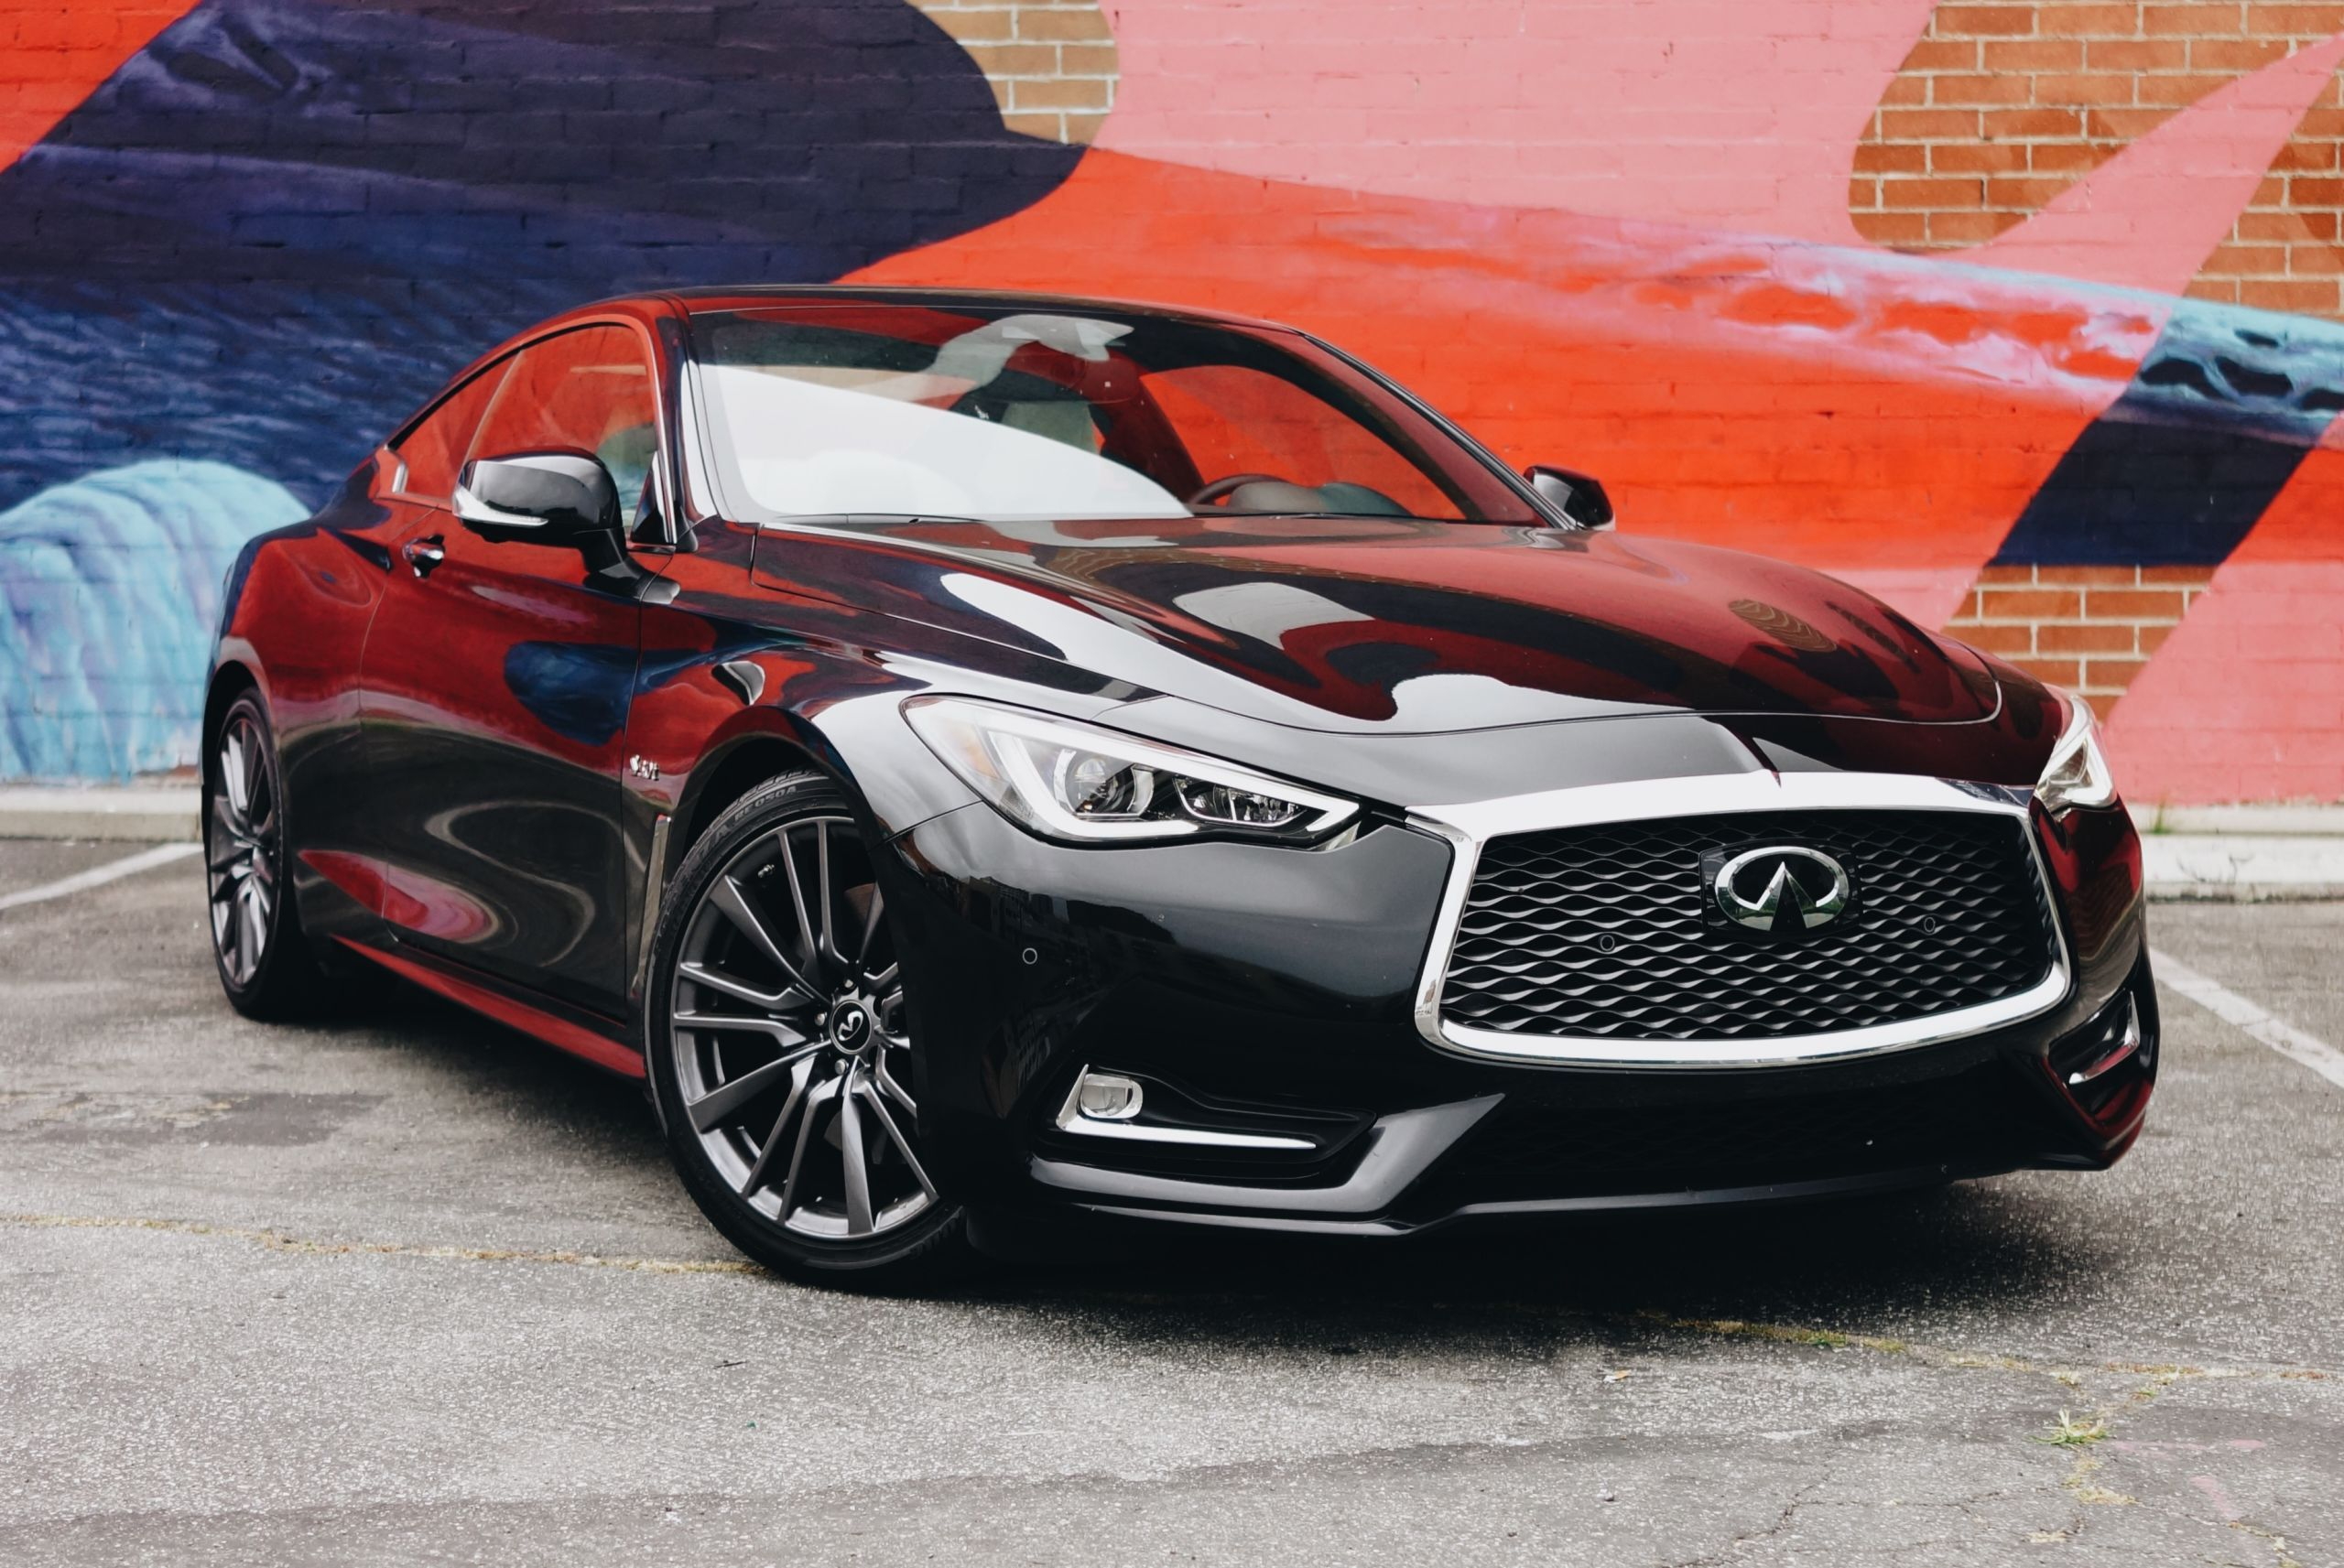 Infiniti S Q60 Red Sport Points Their Performance Line In The Right Direction Infiniti Super Luxury Cars Luxury Cars